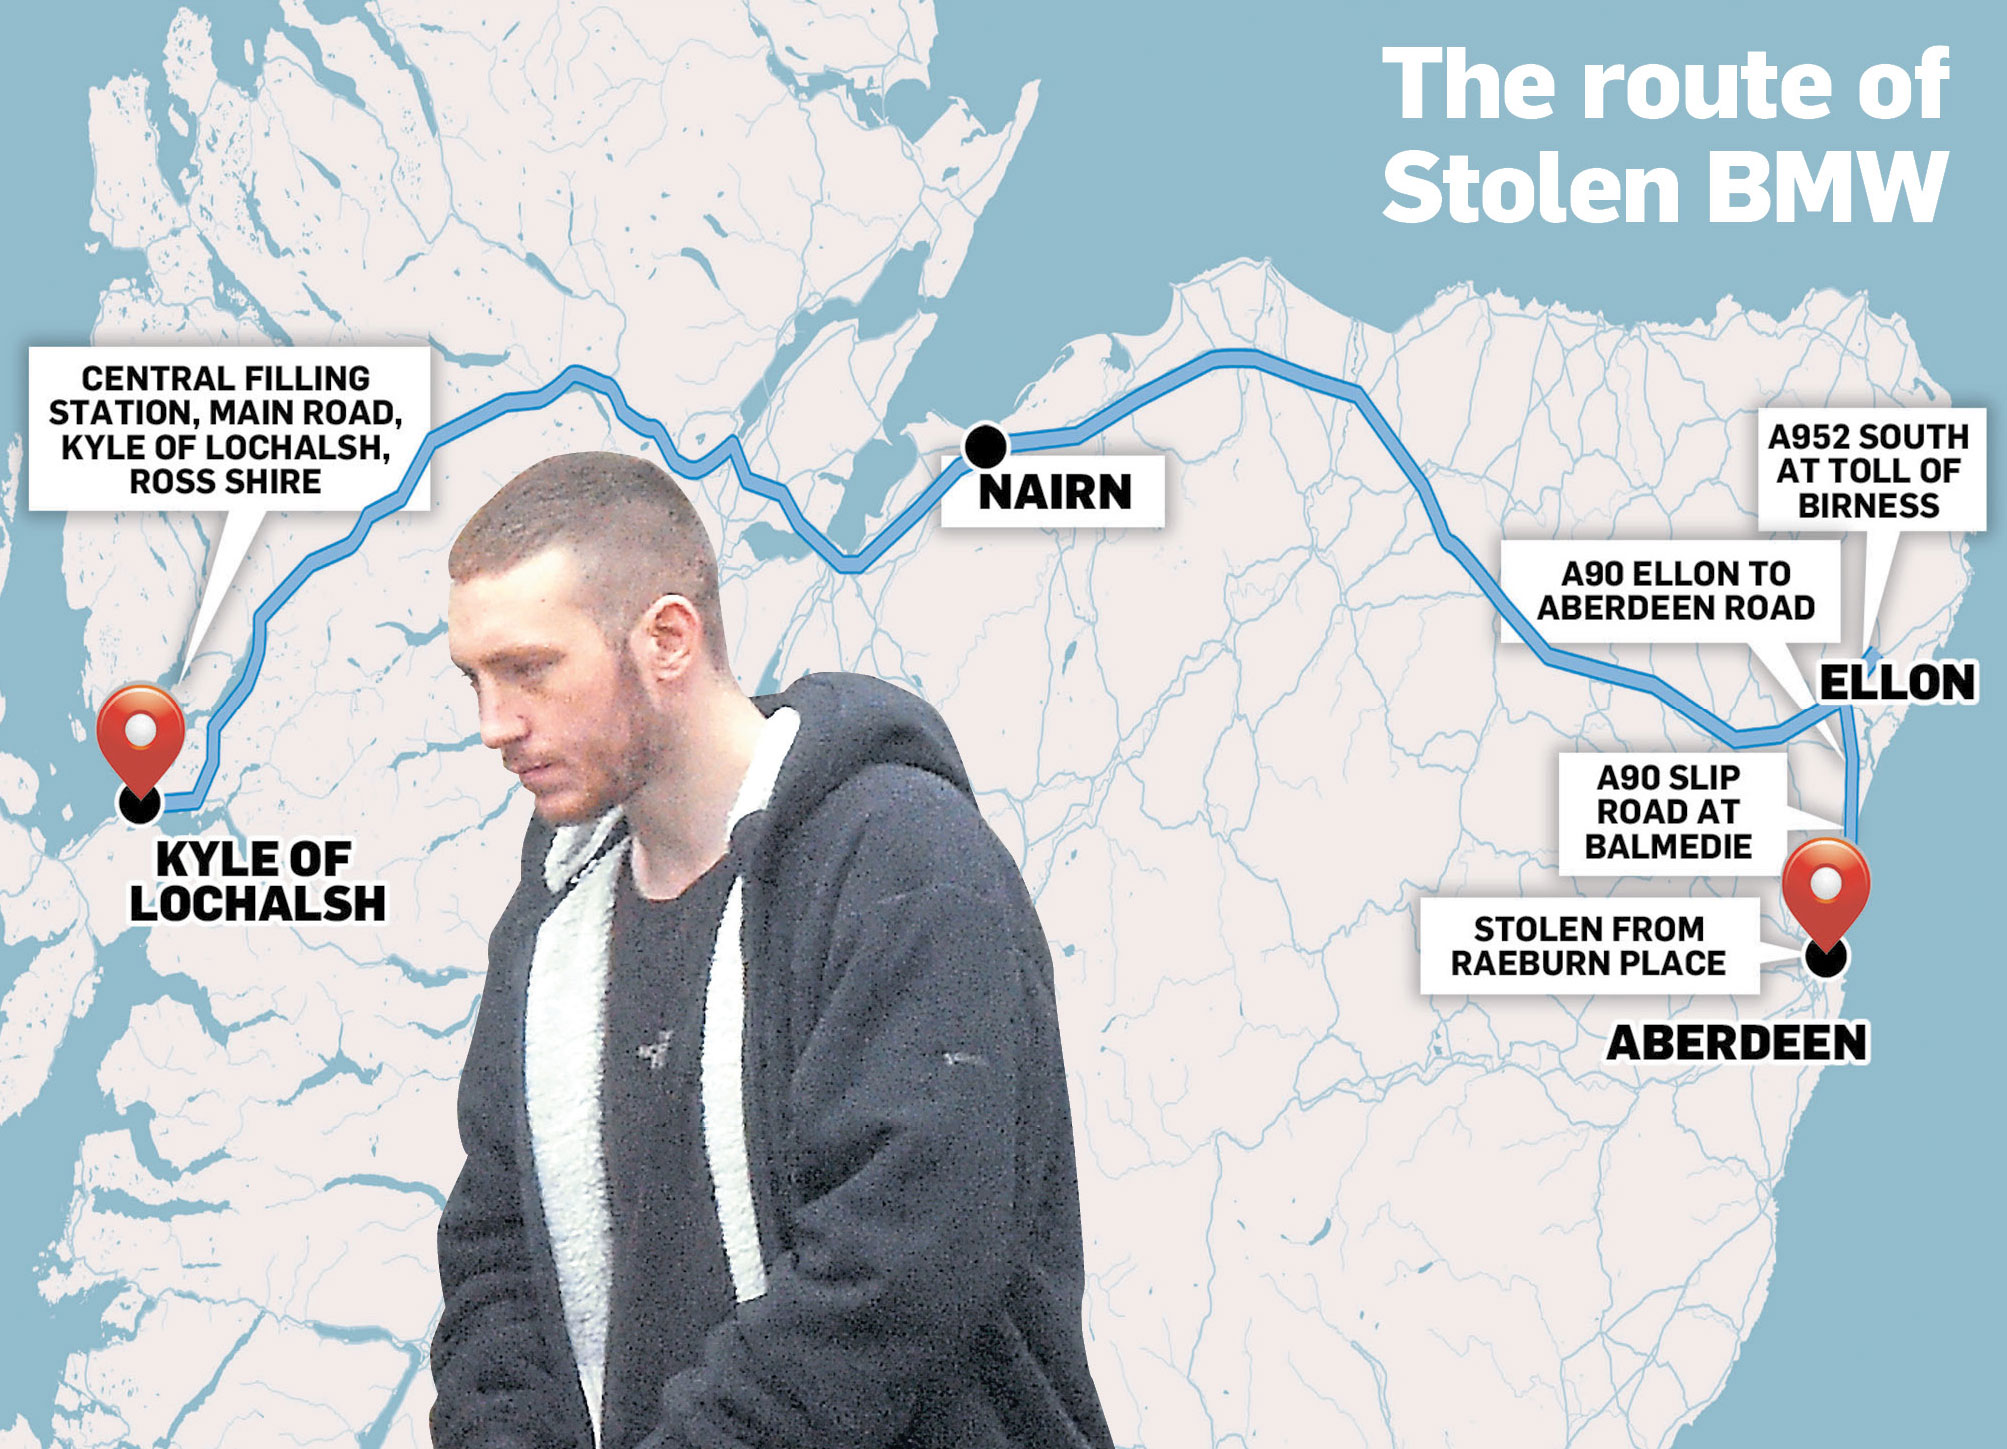 Lee Paterson led police on a chase right across the country, having stolen the car from Raeburn Place in the city